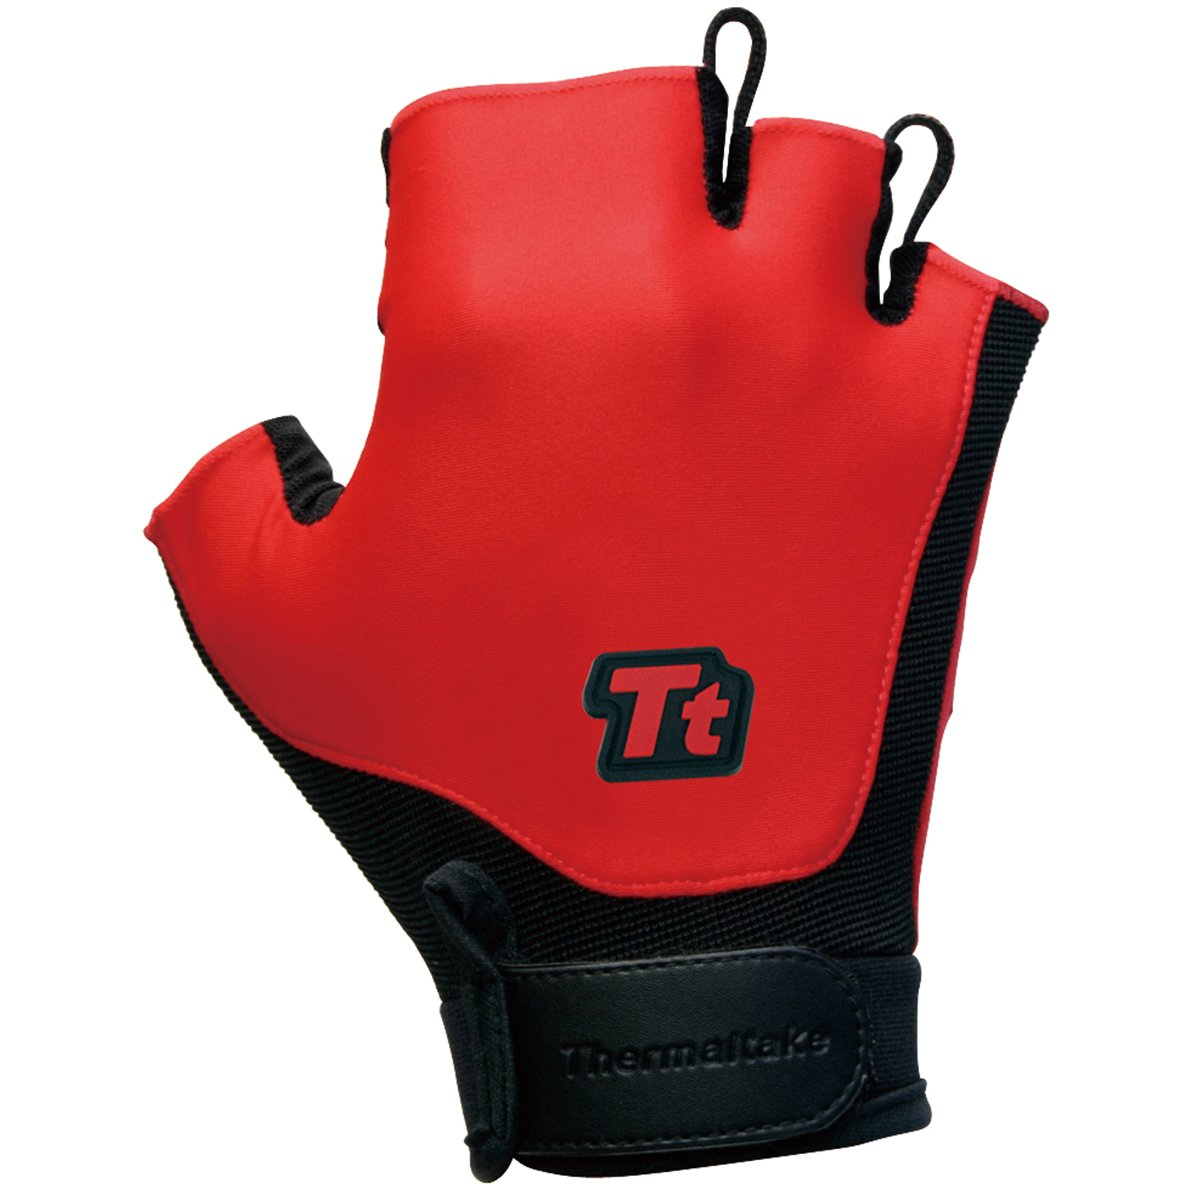 Fingerless gloves for gaming - Thermaltake E Sports Gaming Gloves Amazon Co Uk Computers Accessories